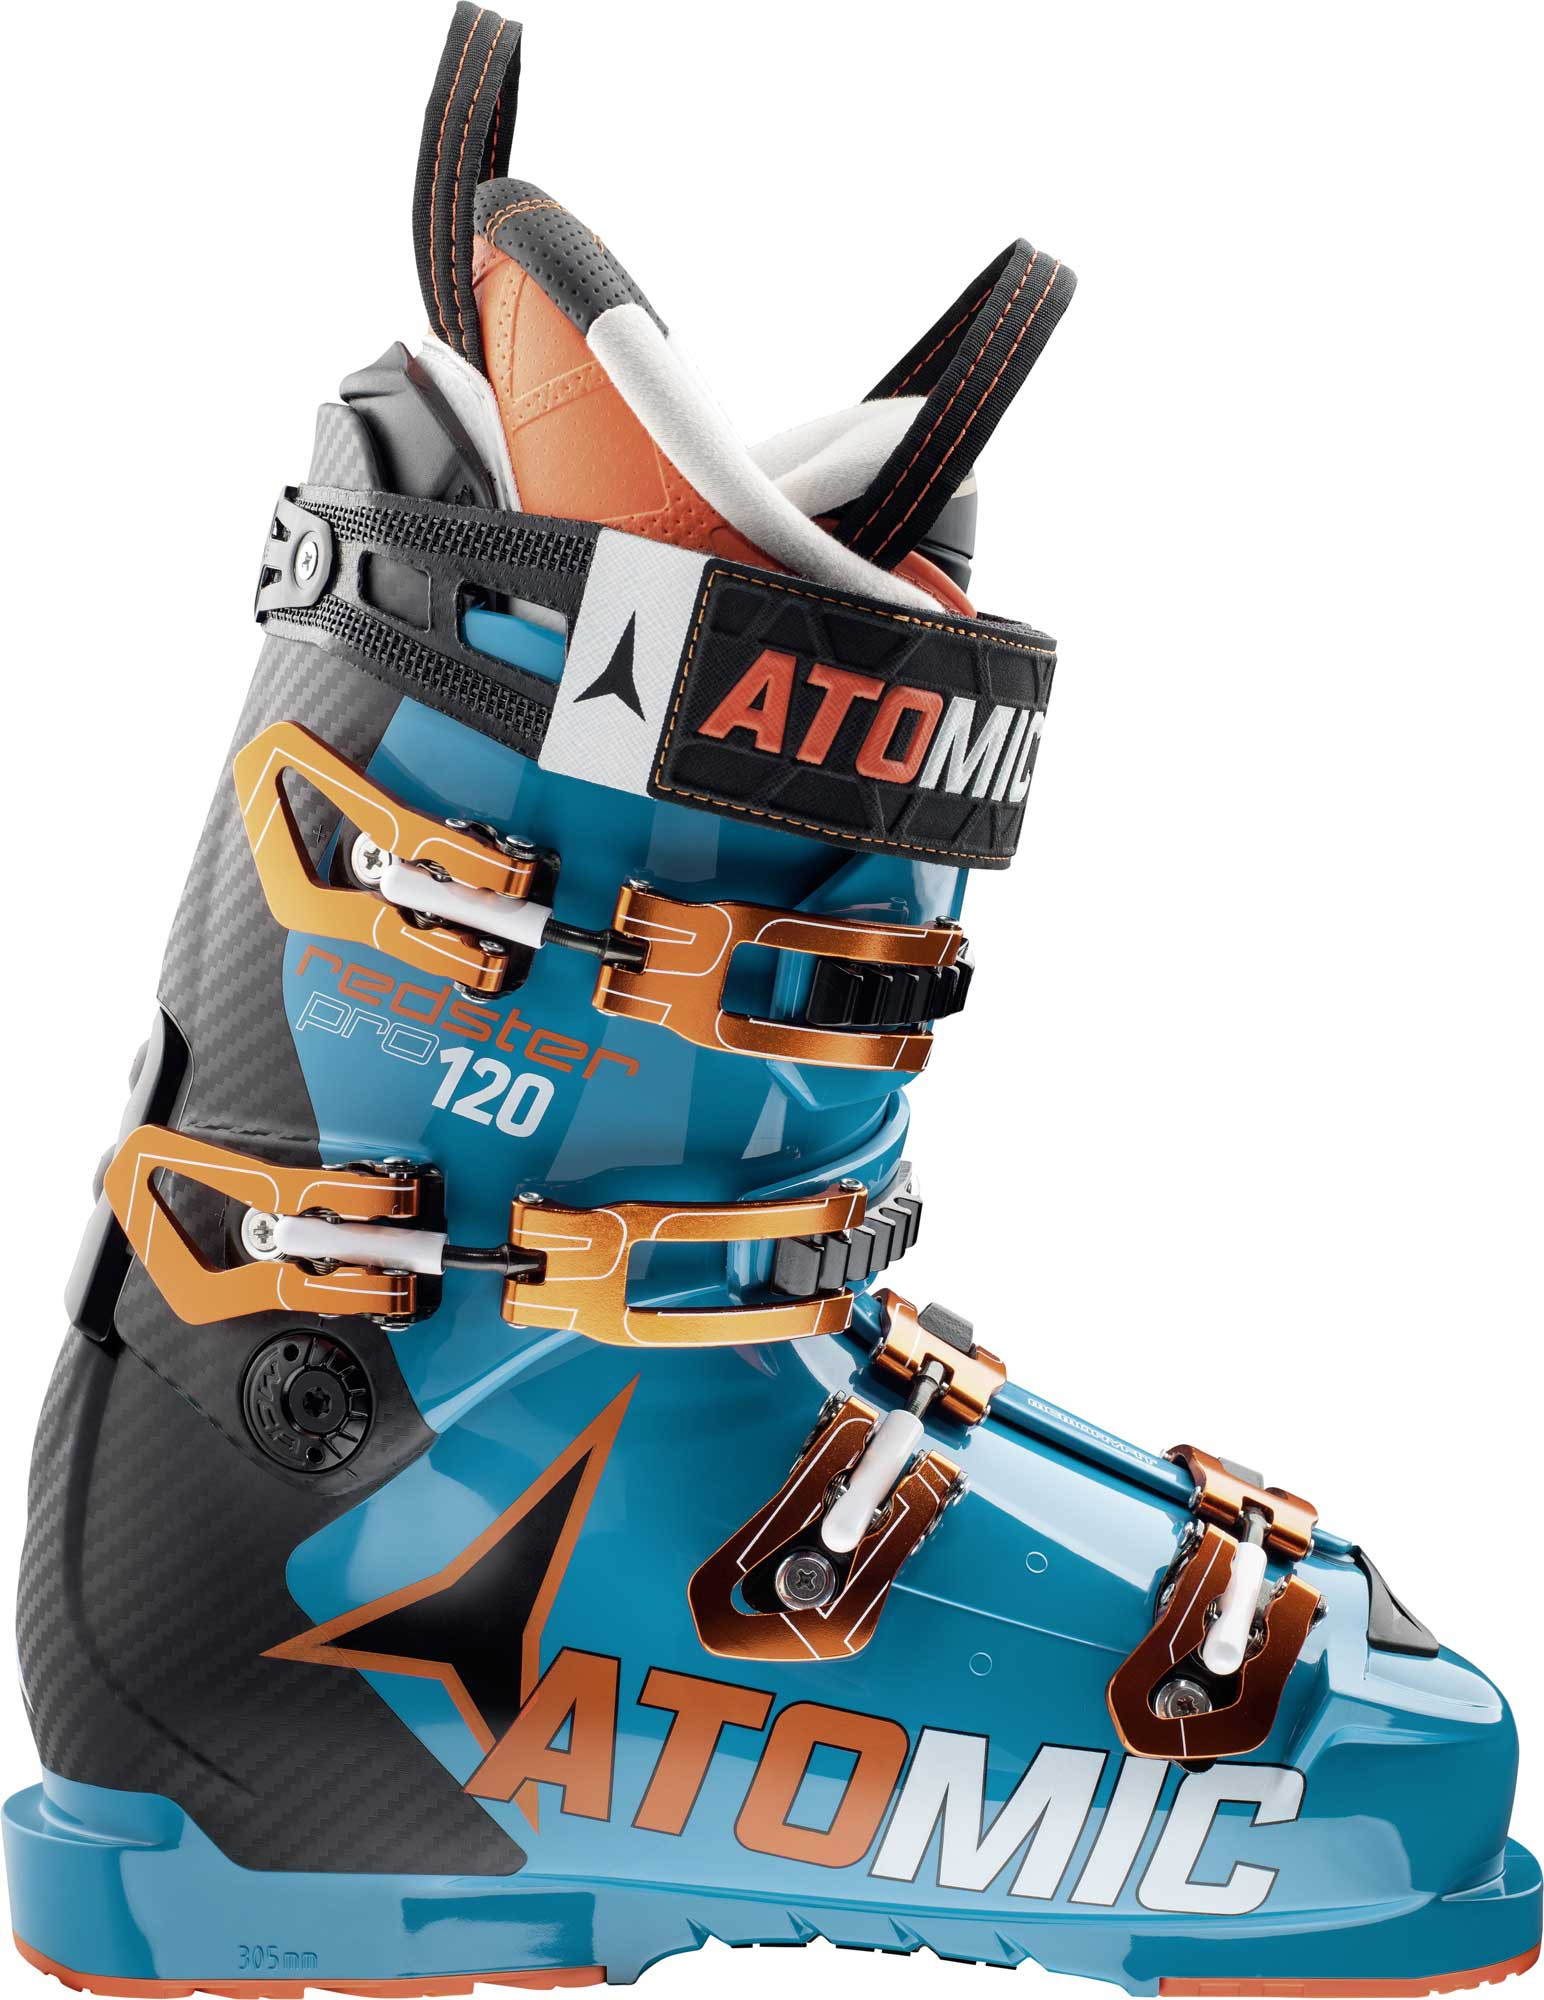 Atomic Redster Pro 120 - 1 Paar High Performance Skischuhe